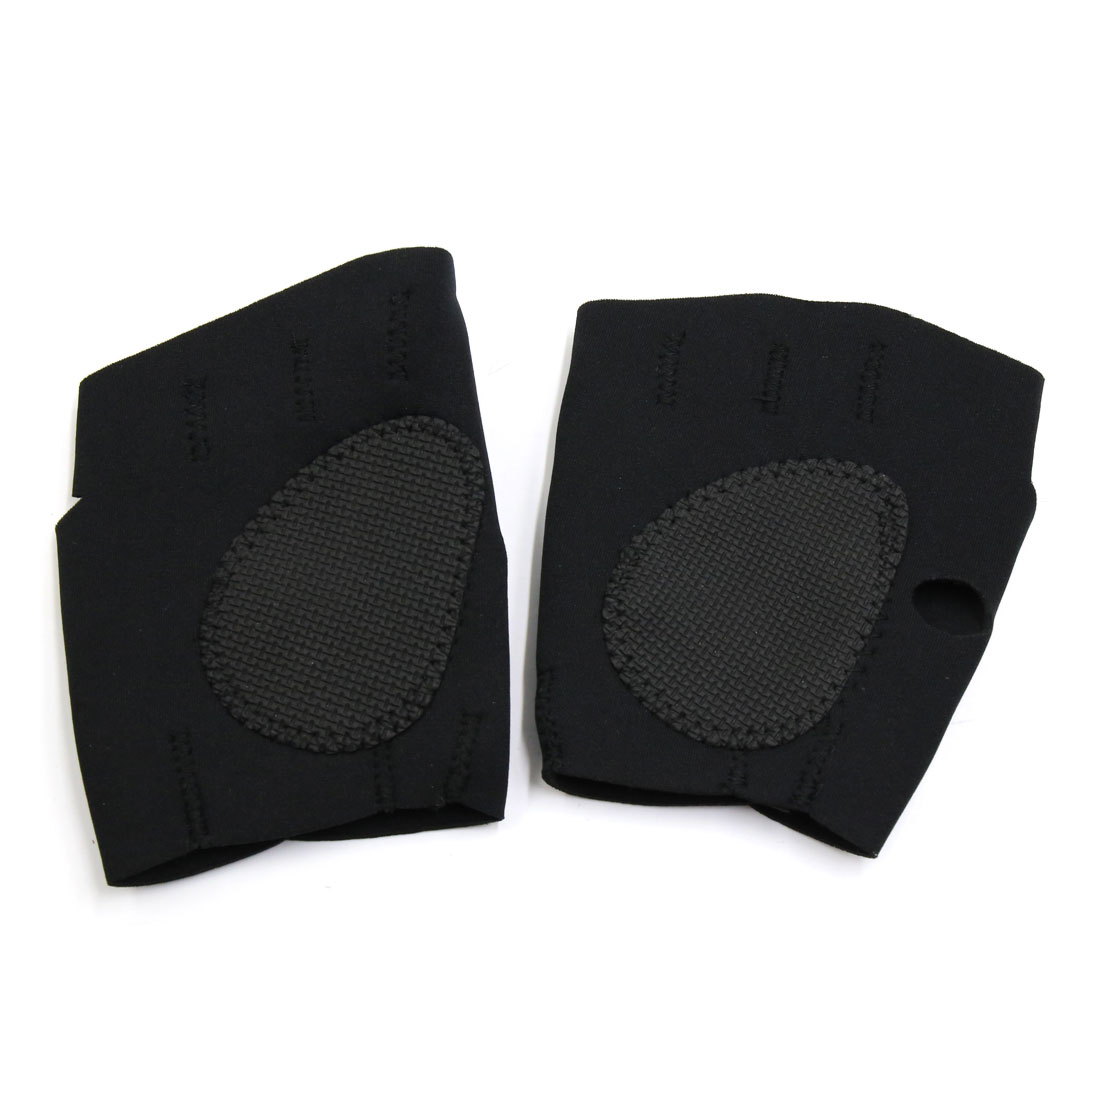 1 Pair Outdoor Training Workout Wrist Wrap Brace Elastic Protector Support Strap Glove Black - image 3 of 5